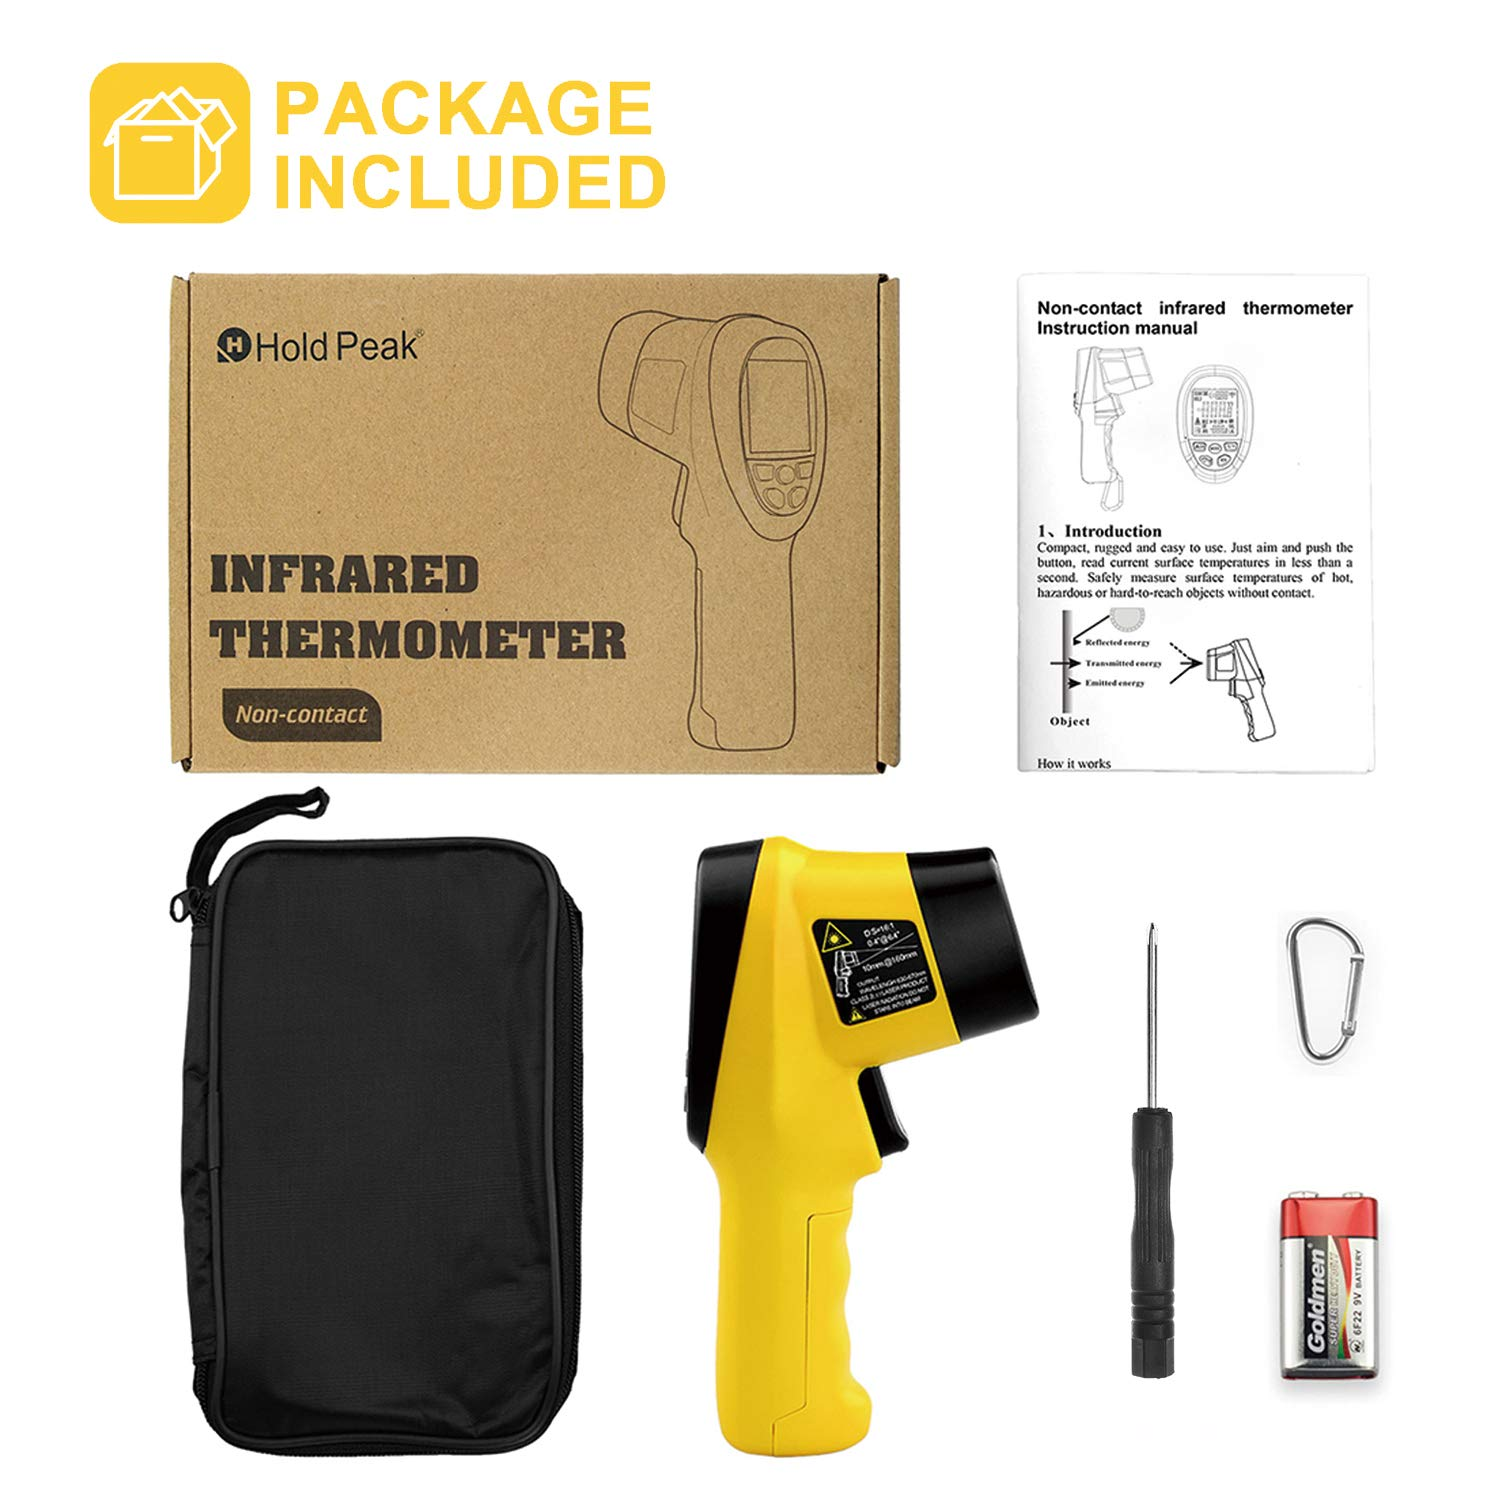 HOLDPEAK 985B Digital Infrared Thermometer Dual Laser Thermometer Non-Contact Temperature Gun -58℉~2480℉ (-50℃~1360℃) with Data Hold & Adjustable Emissivity for Forge Melting Furnace Kilns Industry by H HOLDPEAK (Image #7)